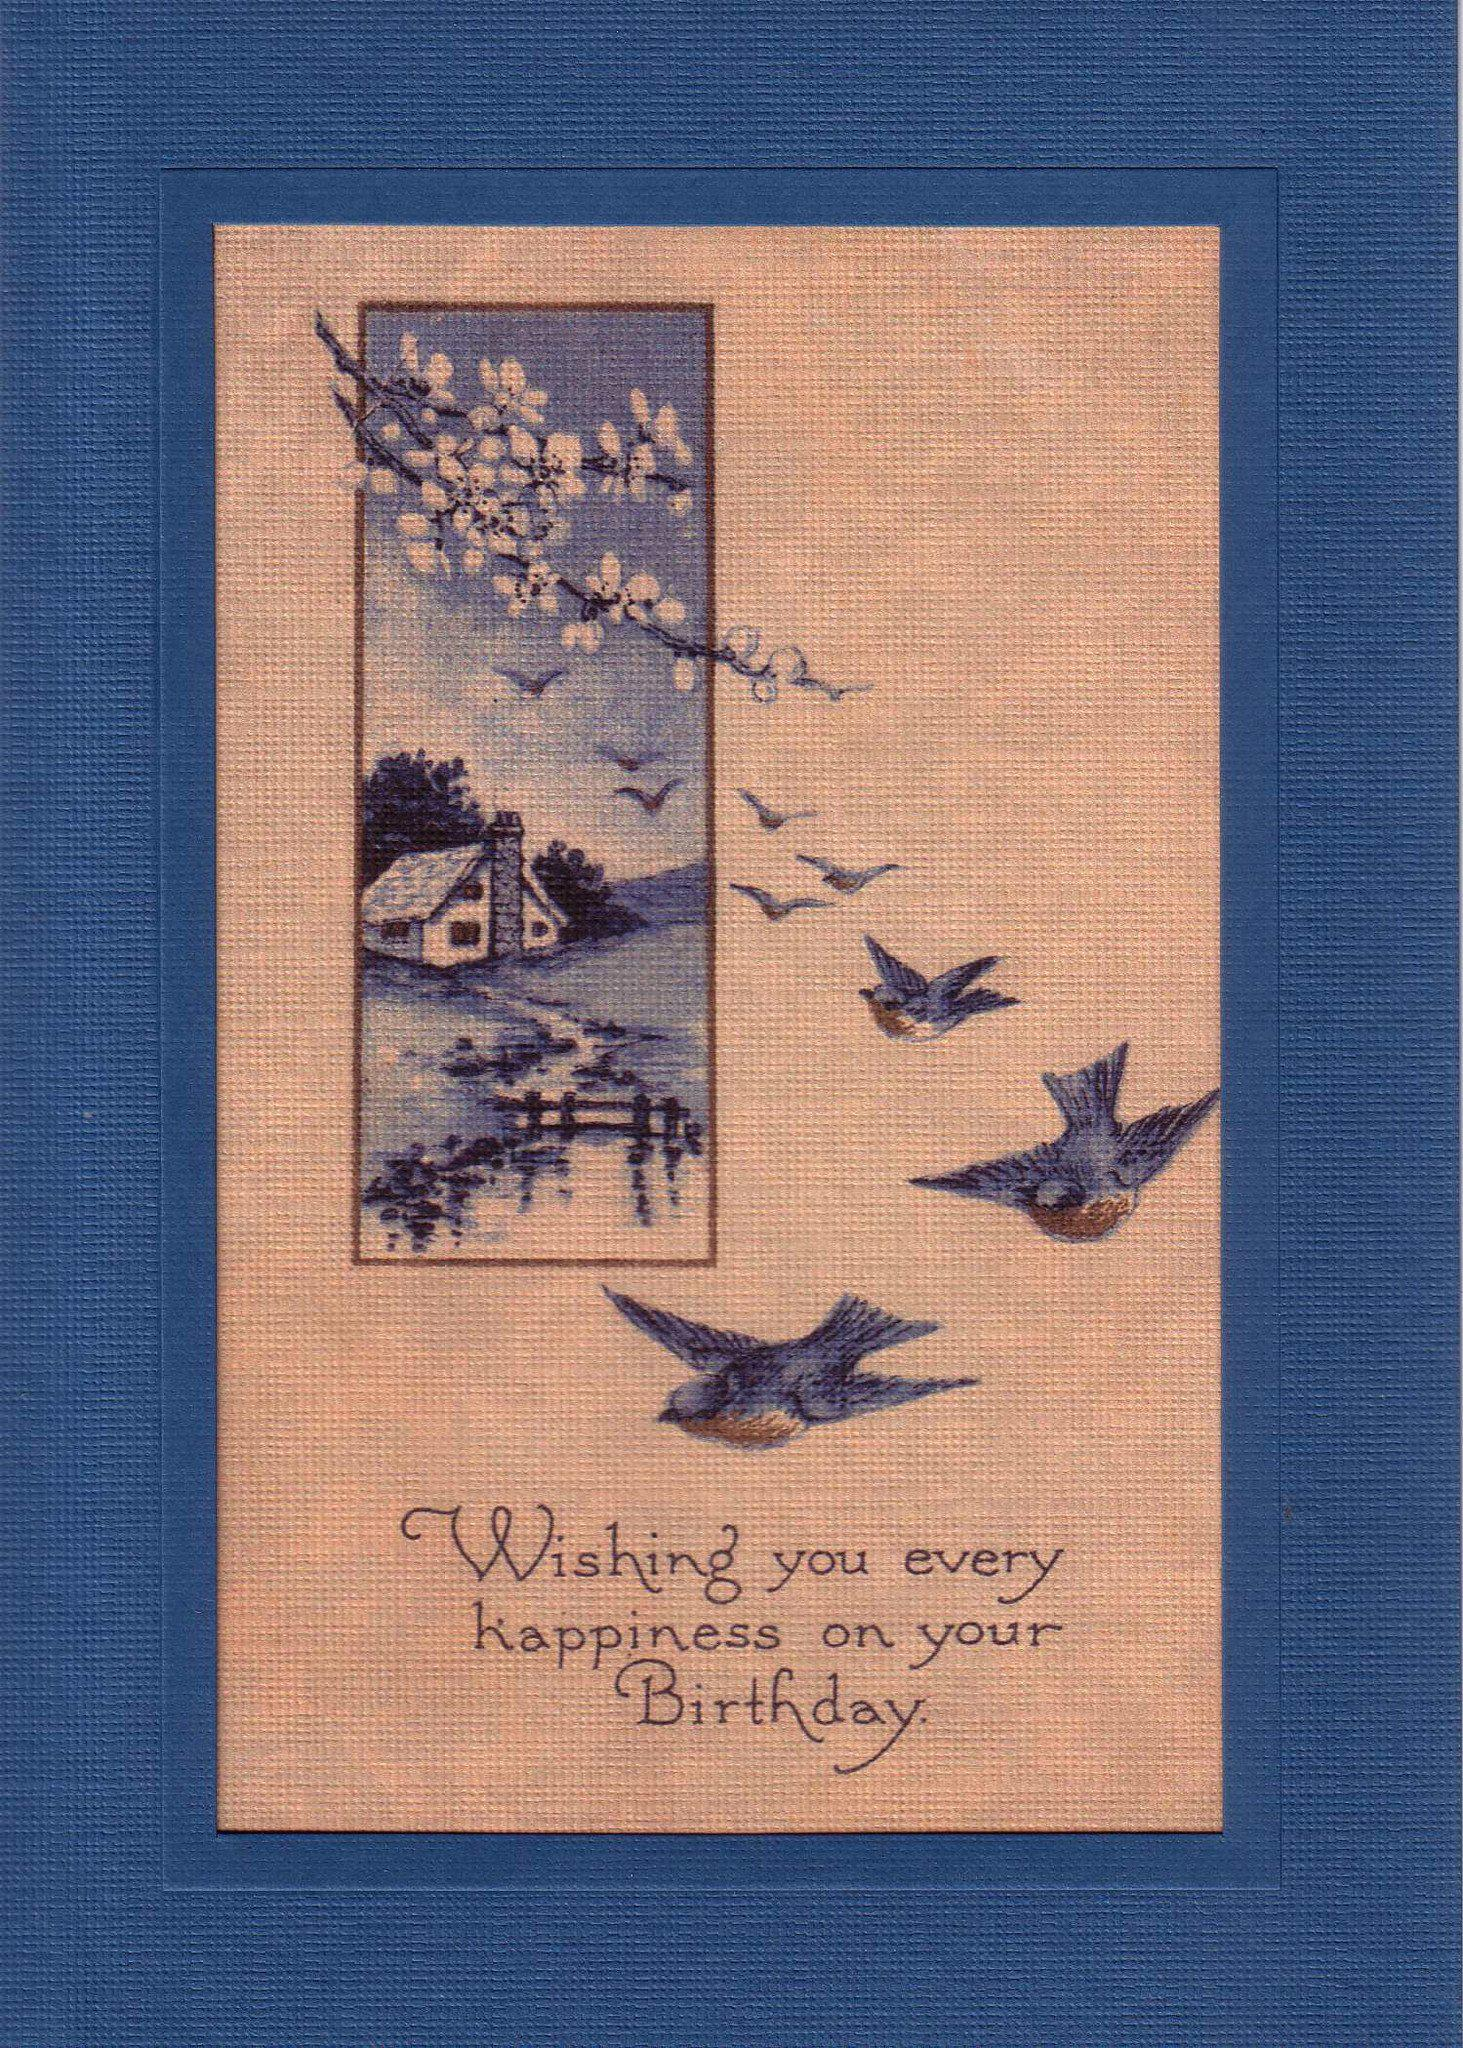 Birthday Happiness-Greetings from the Past-Plymouth Cards